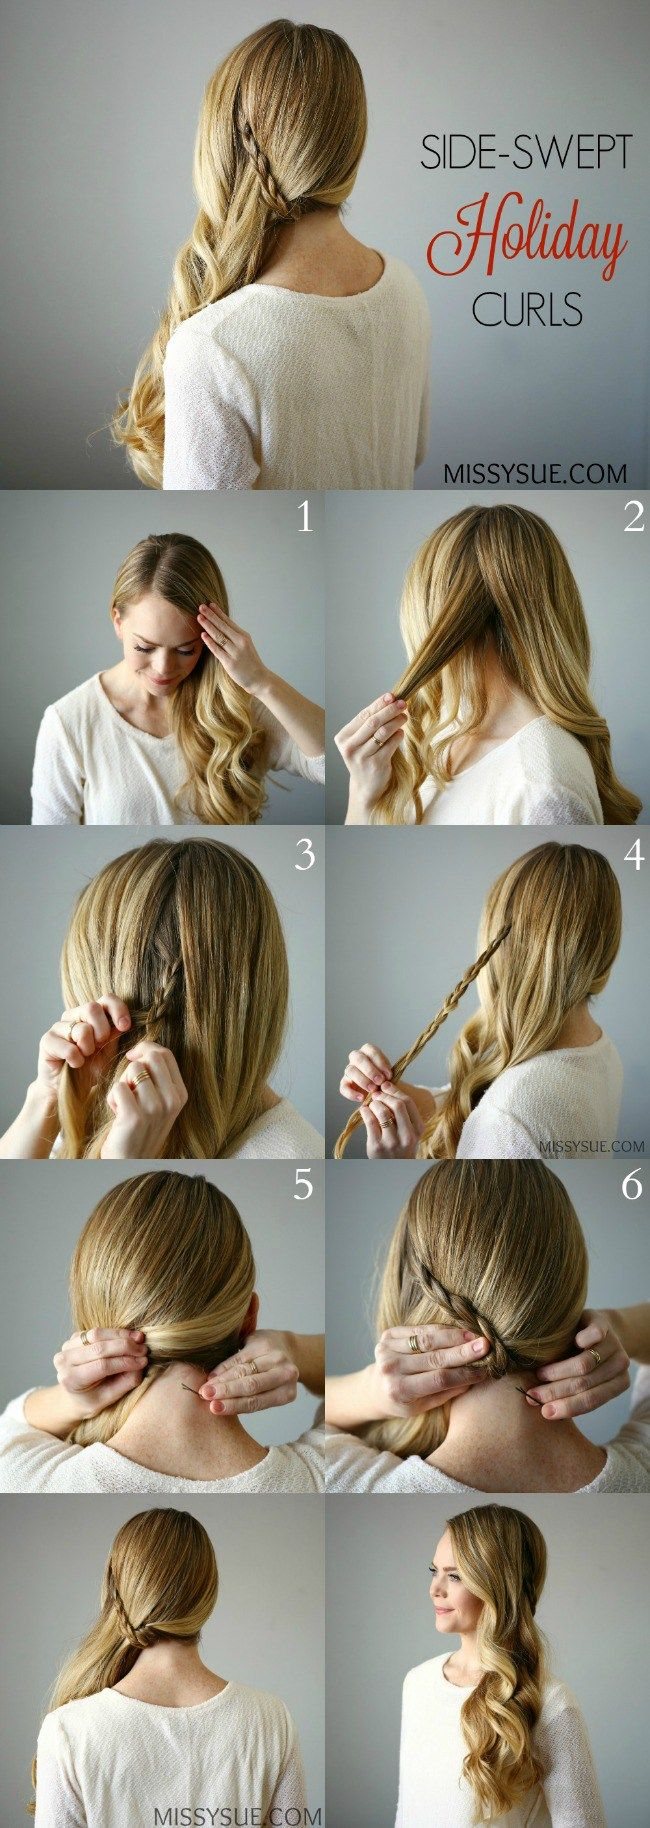 side swept prom hair tutorial